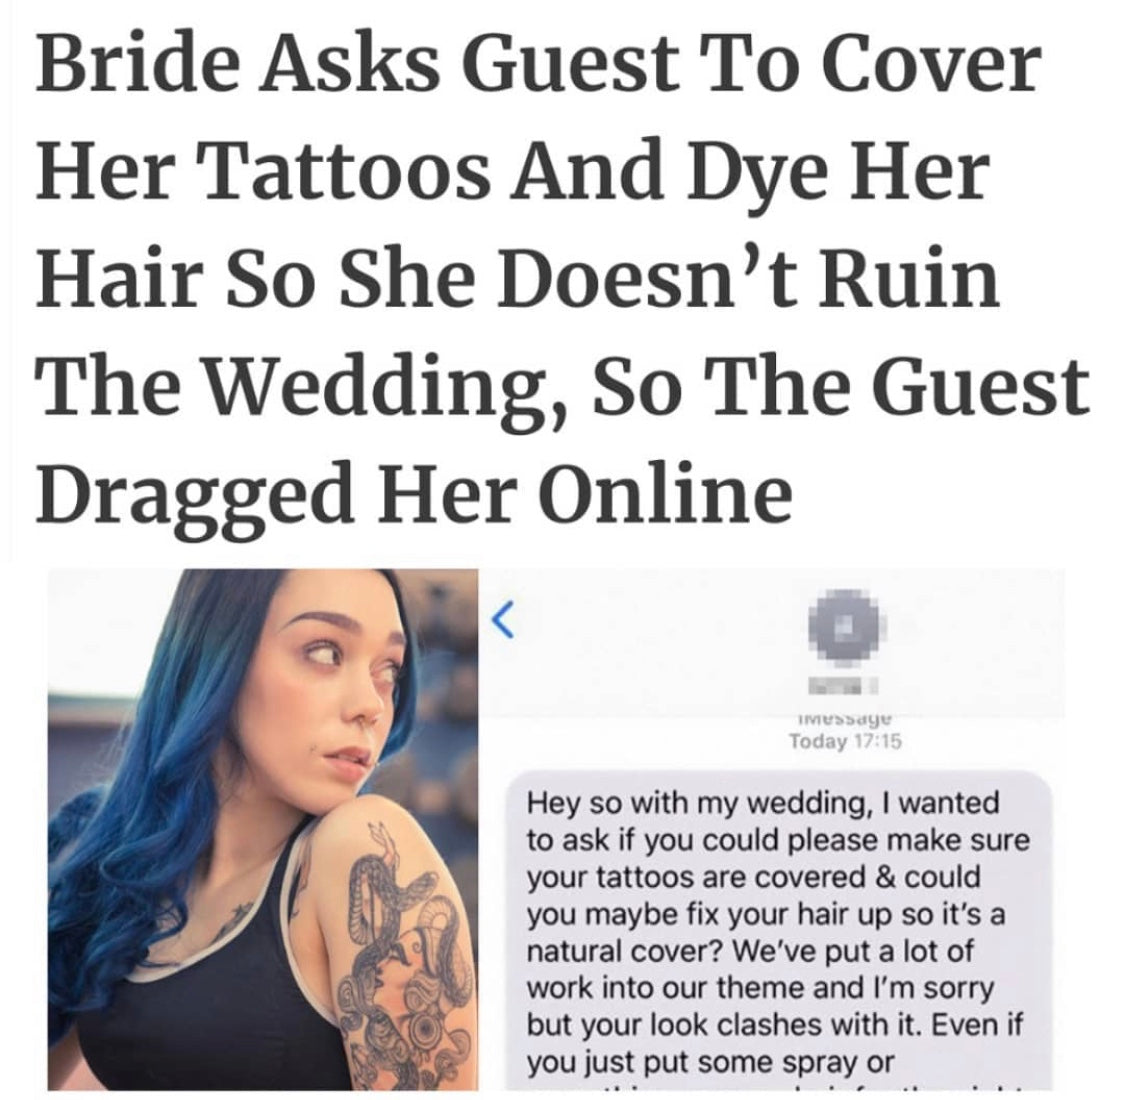 Bride asks Guest to Cover Tattoos